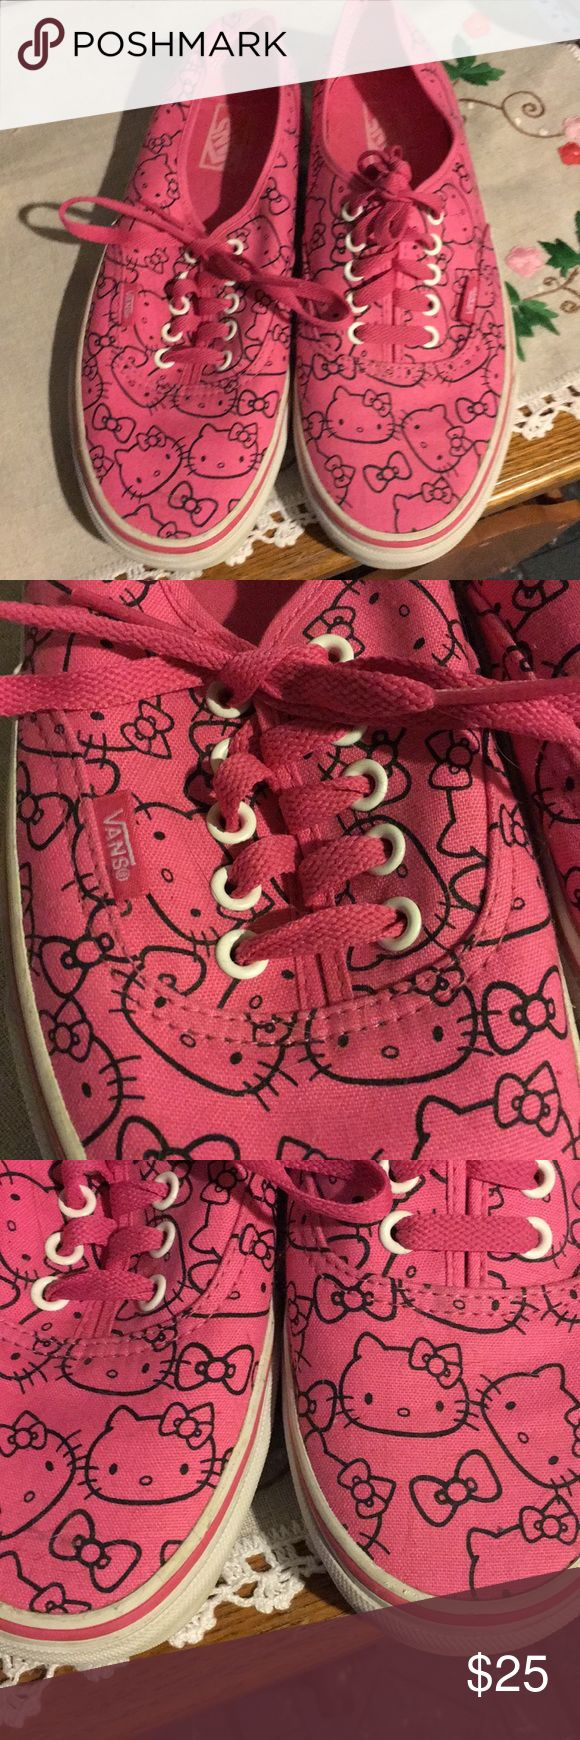 Vans Authentic Pink Hello Kitty shoes Lovingly worn pink Hello Kitty Vans size 10 womens. Vans Shoes Sneakers